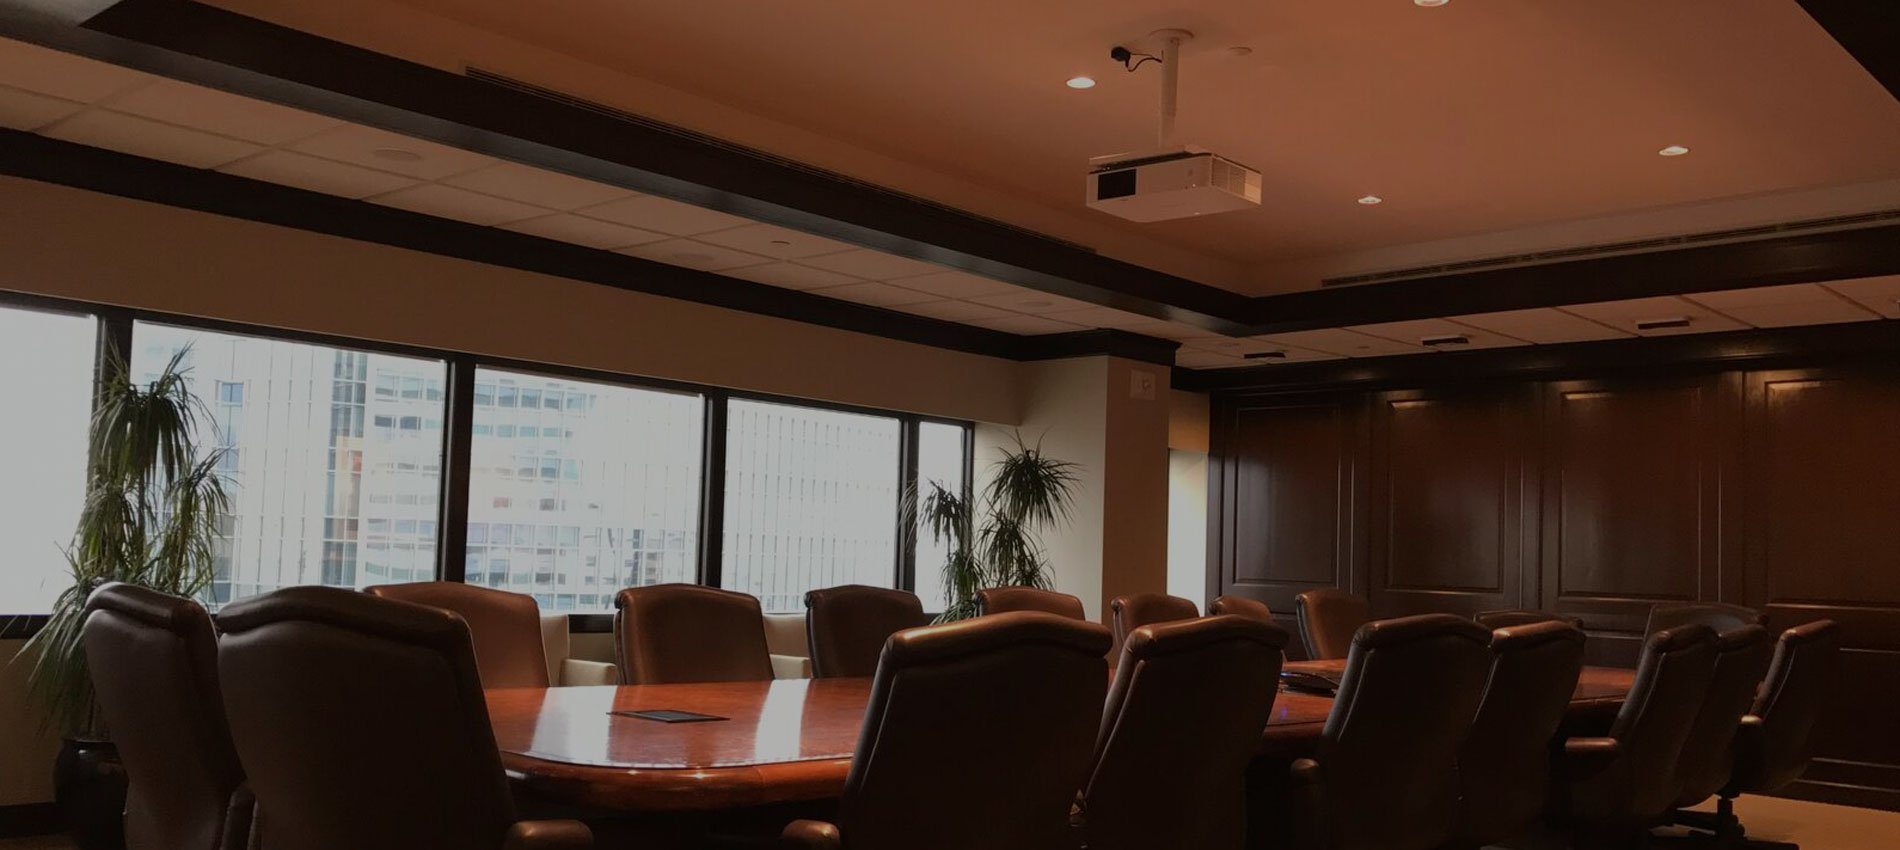 Conference Room Smart Systems-for-Oklahoma City Tulsa Edmond